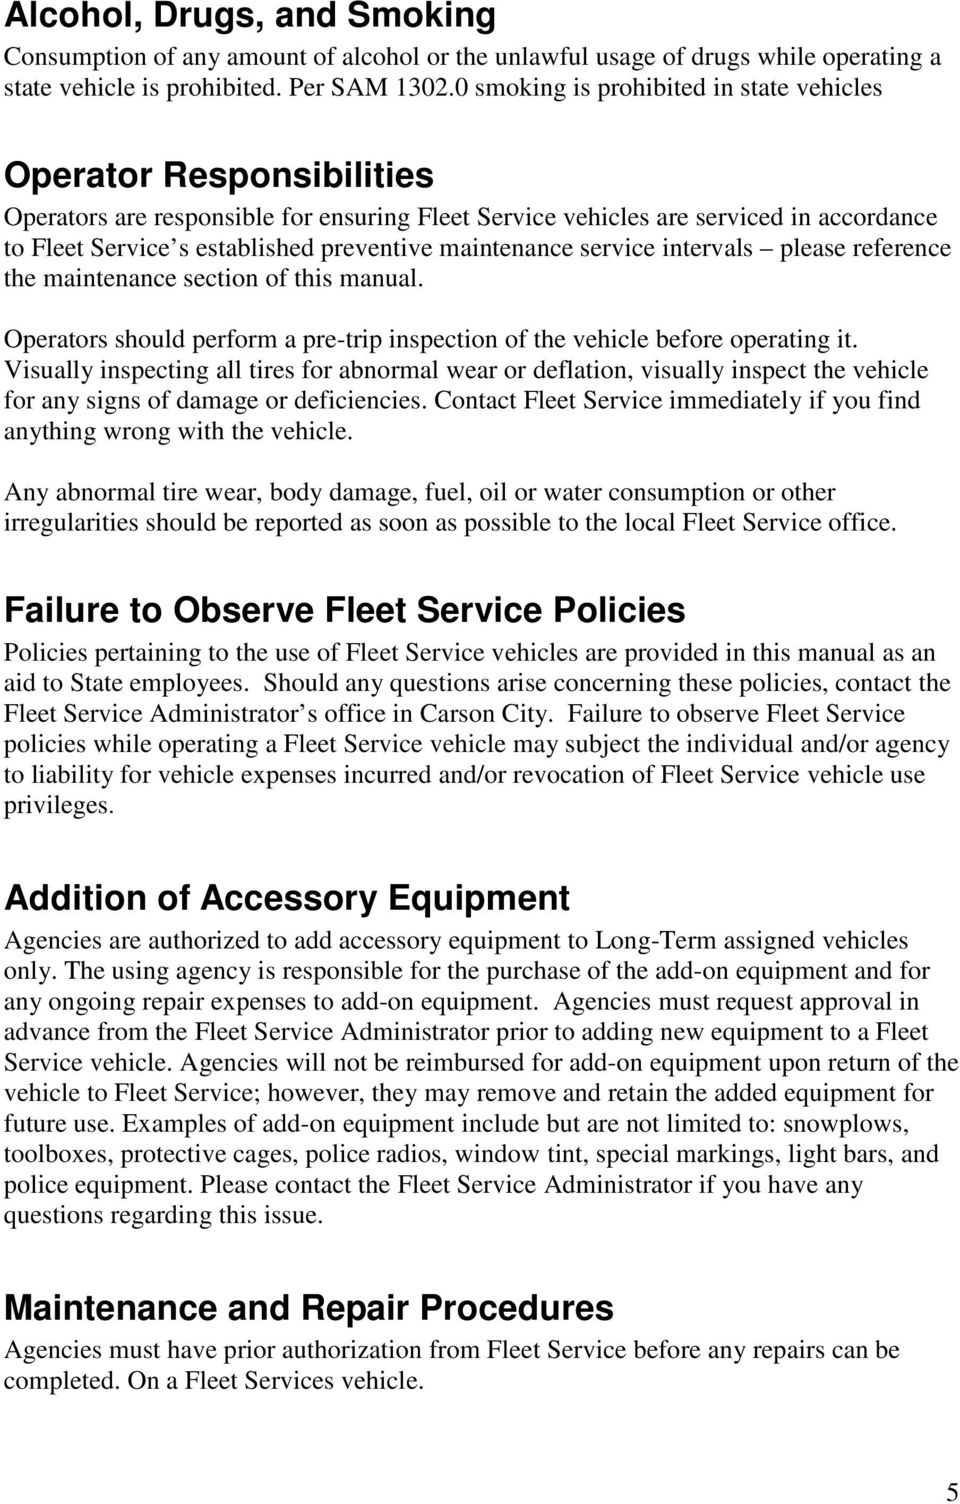 maintenance service intervals please reference the maintenance section of this manual. Operators should perform a pre-trip inspection of the vehicle before operating it.